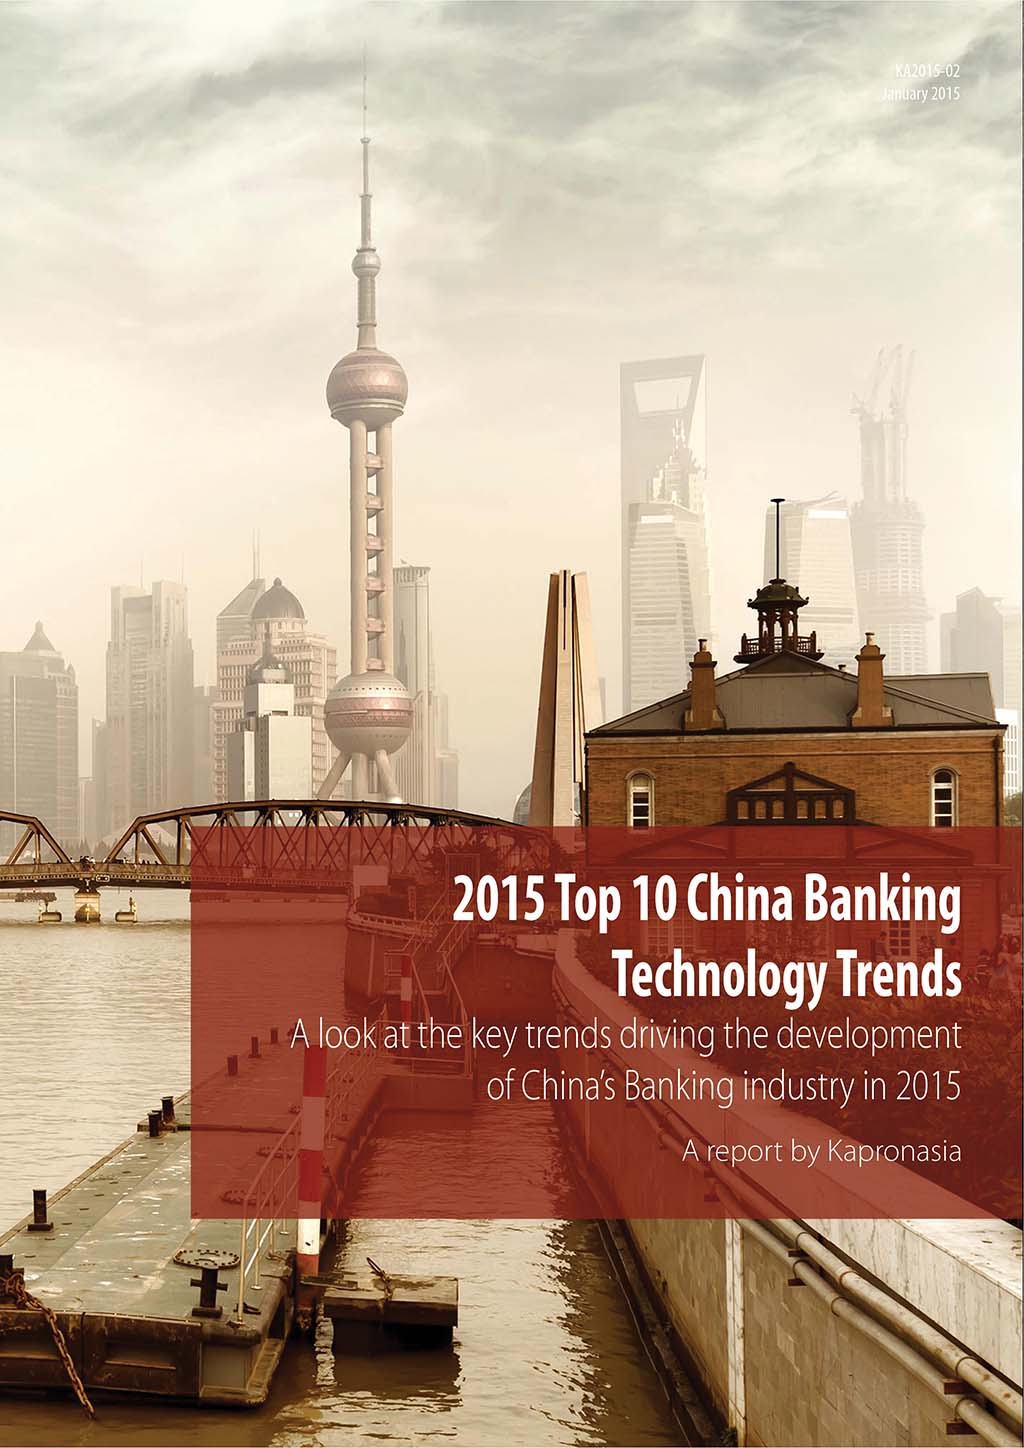 Top 10 China Banking Technology Trends 2015